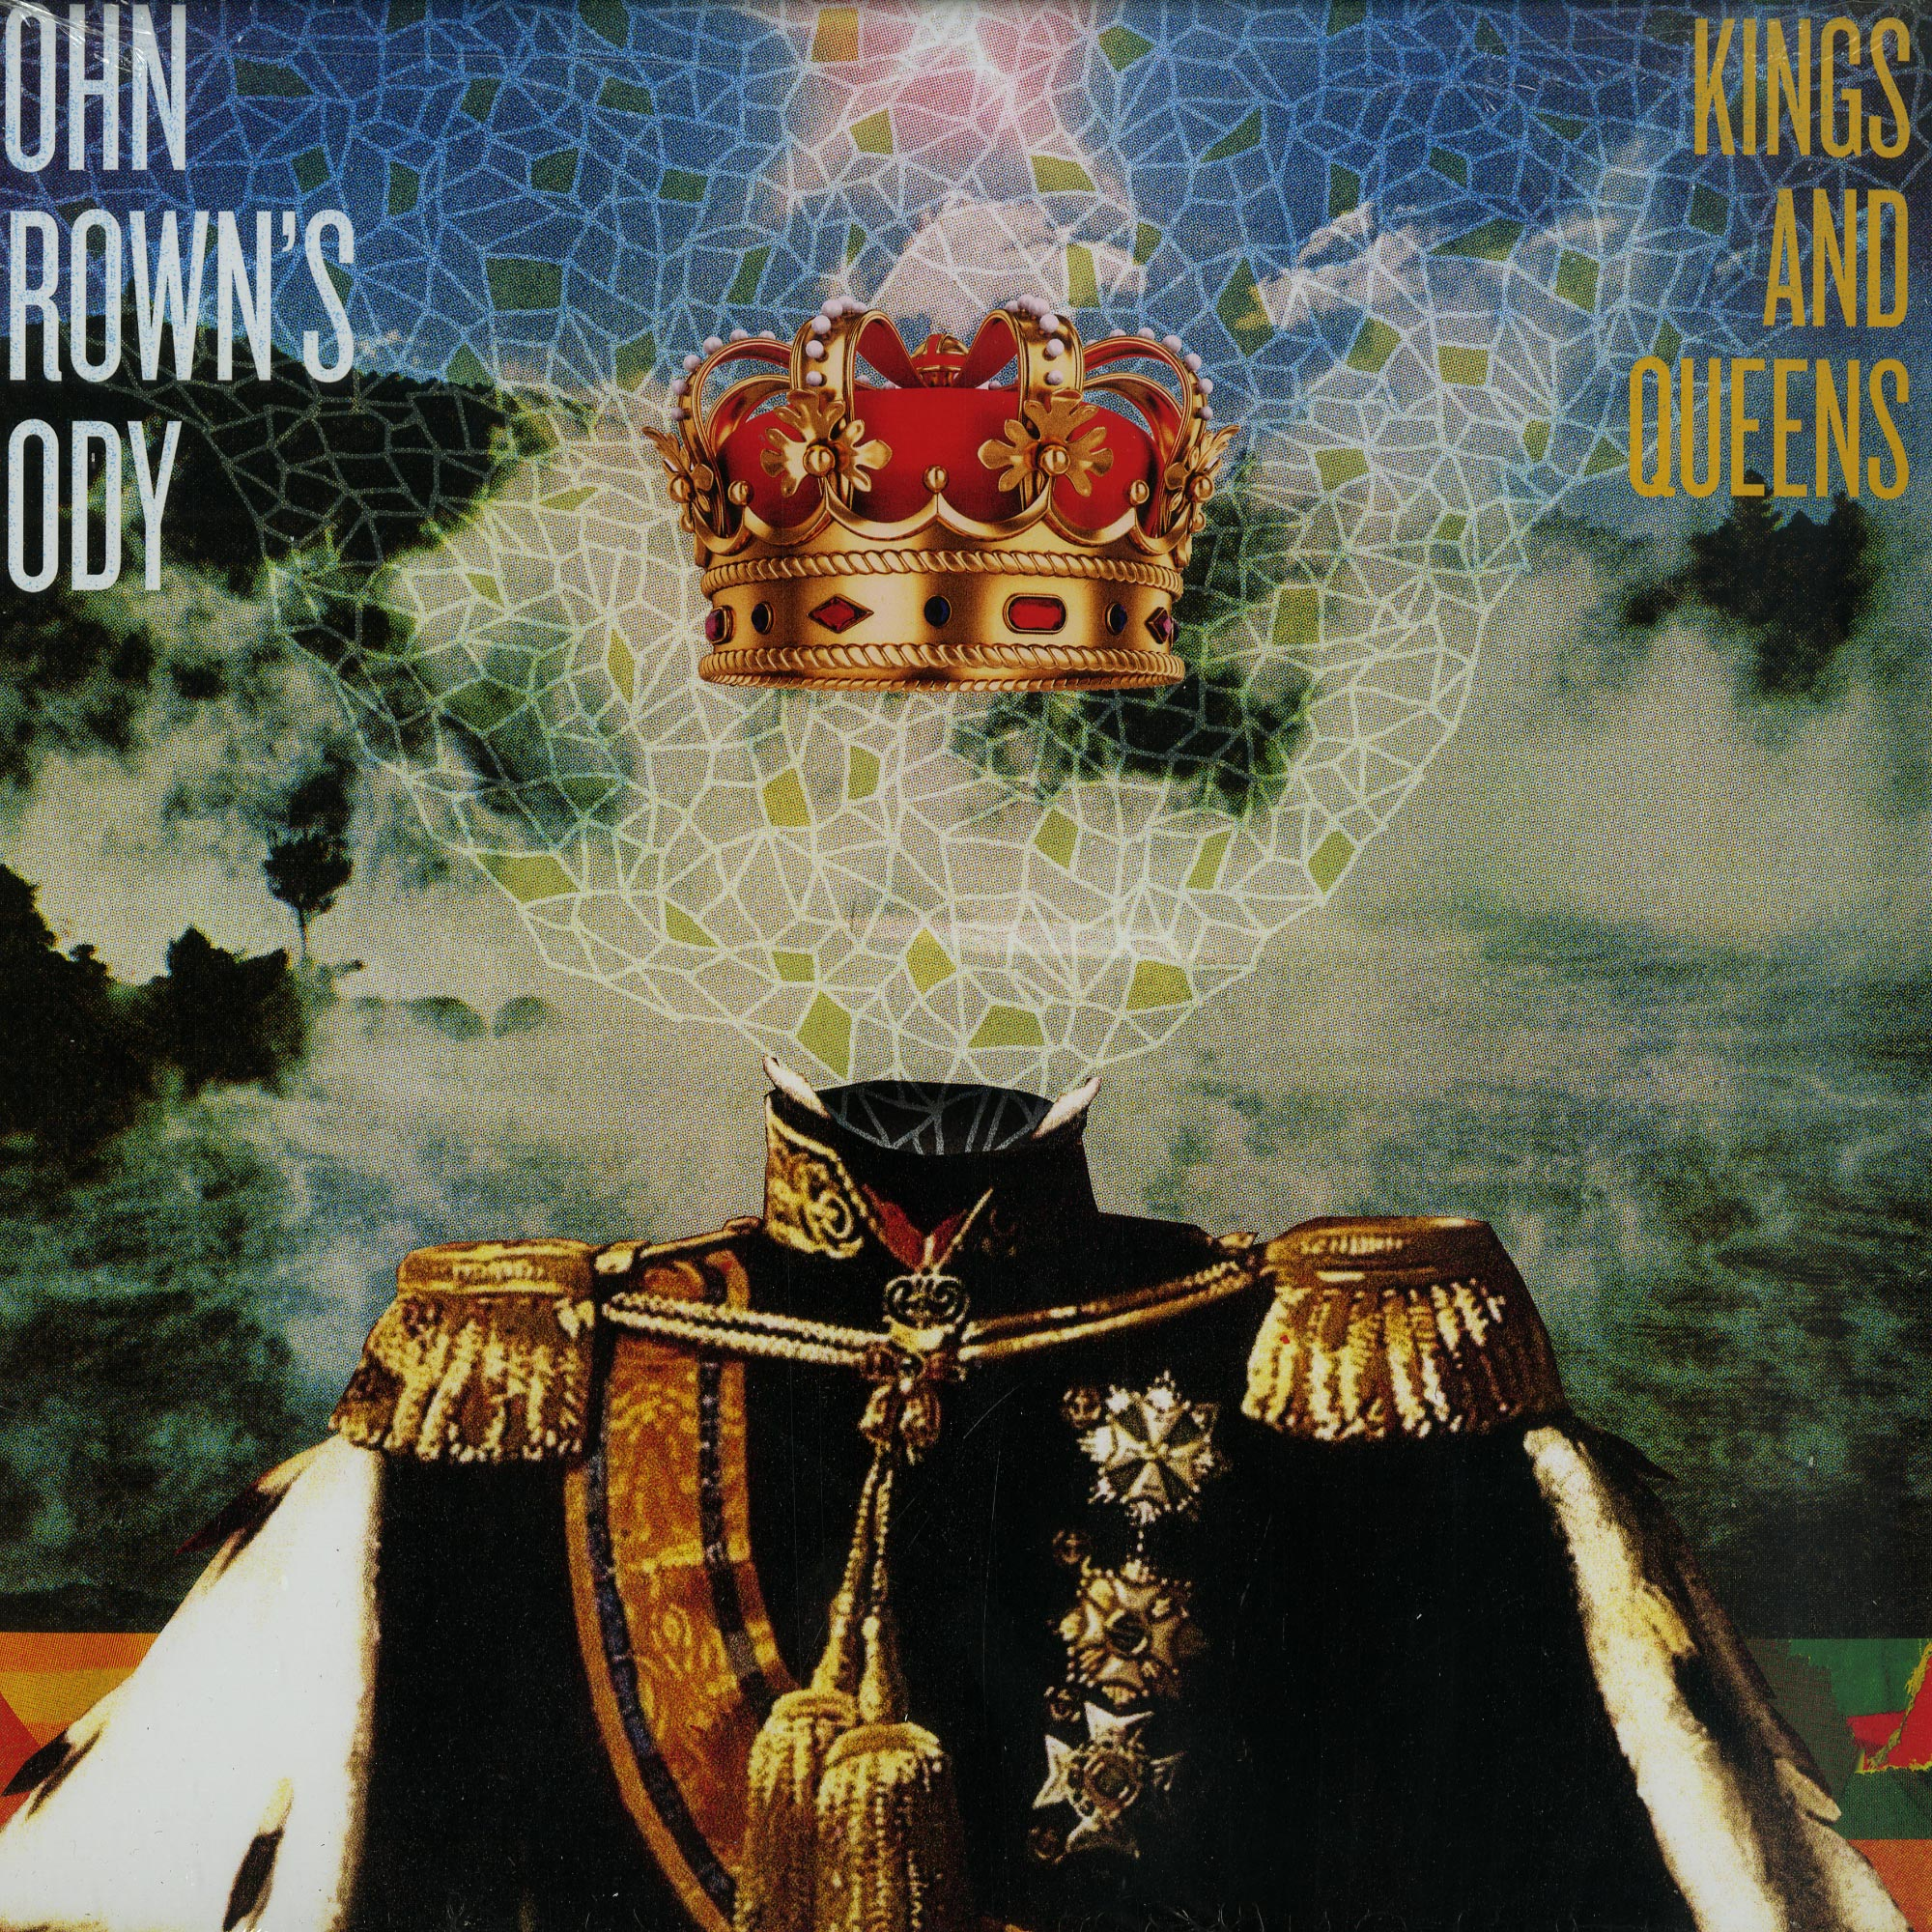 John Browns Body - KINGS AND QUEENS